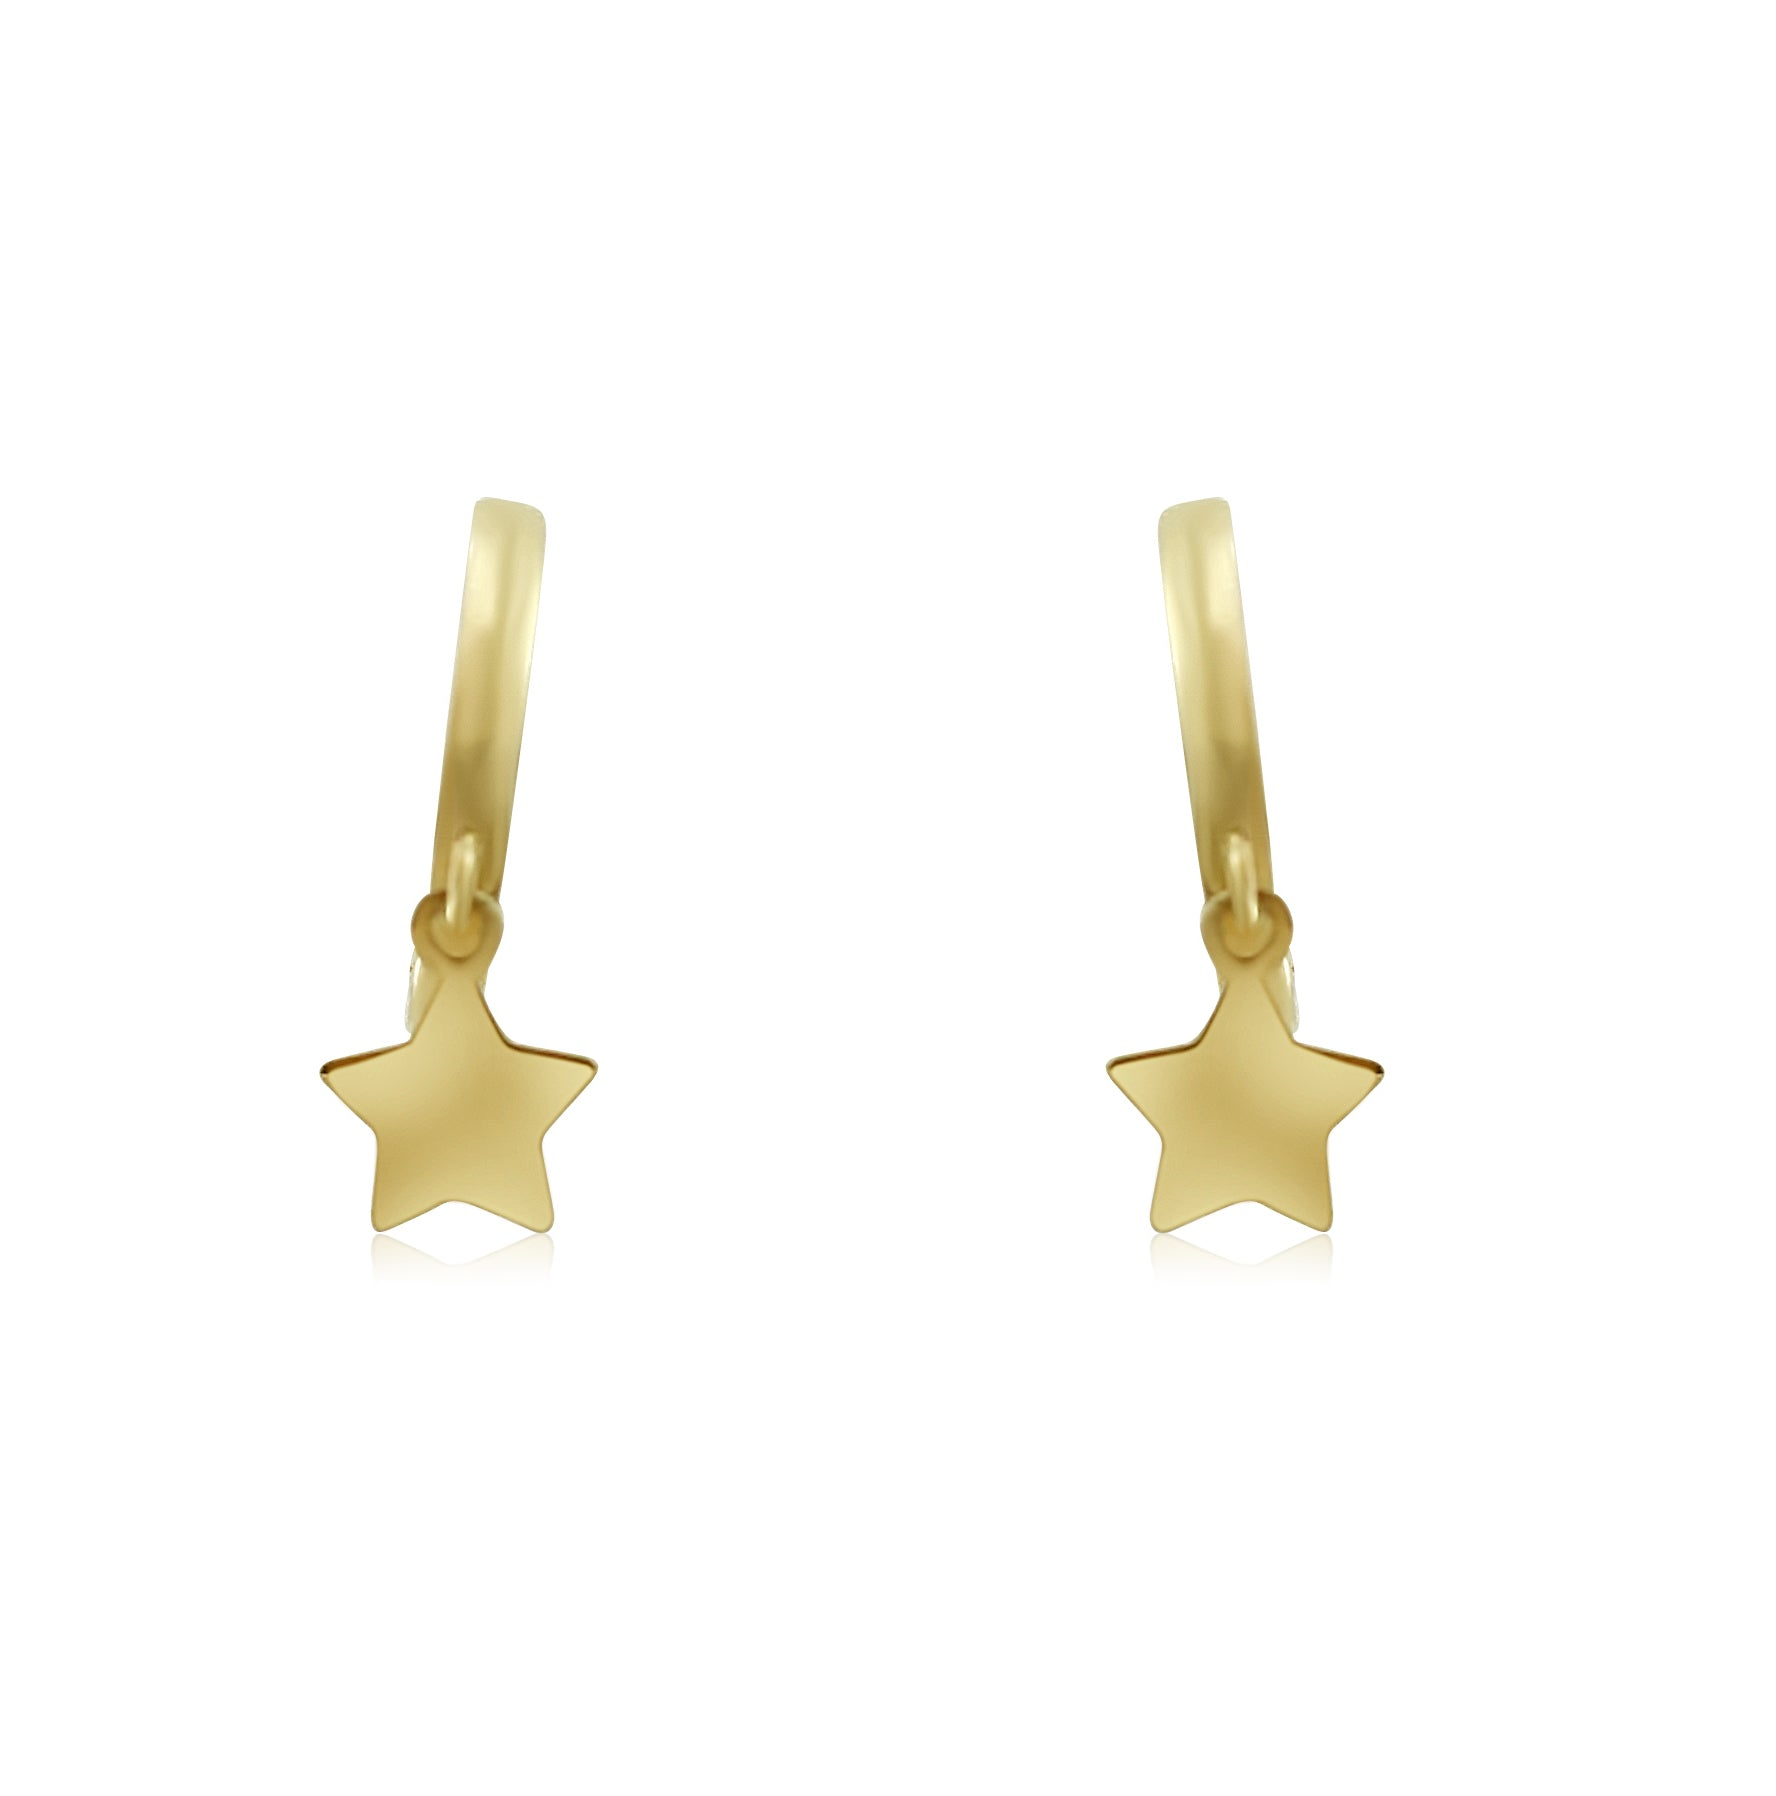 10mm 14k yellow gold lever back hoops with matching stars